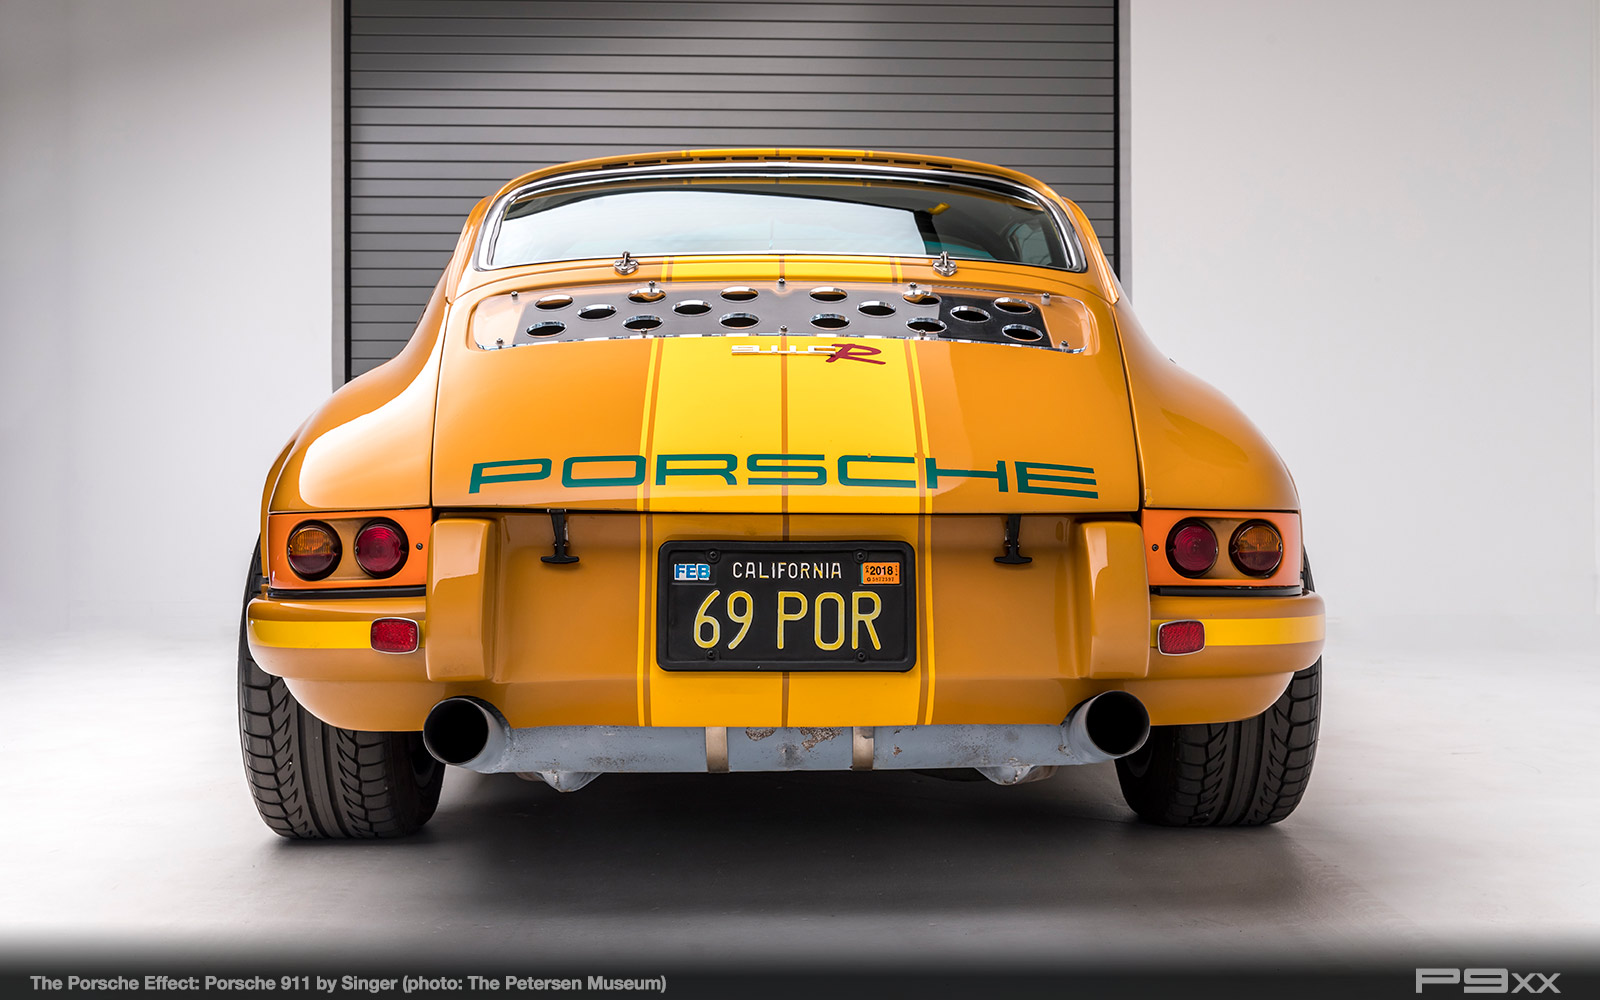 Singer-911-Petersen-Automotive-Museum-The-Porsche-Effect-291